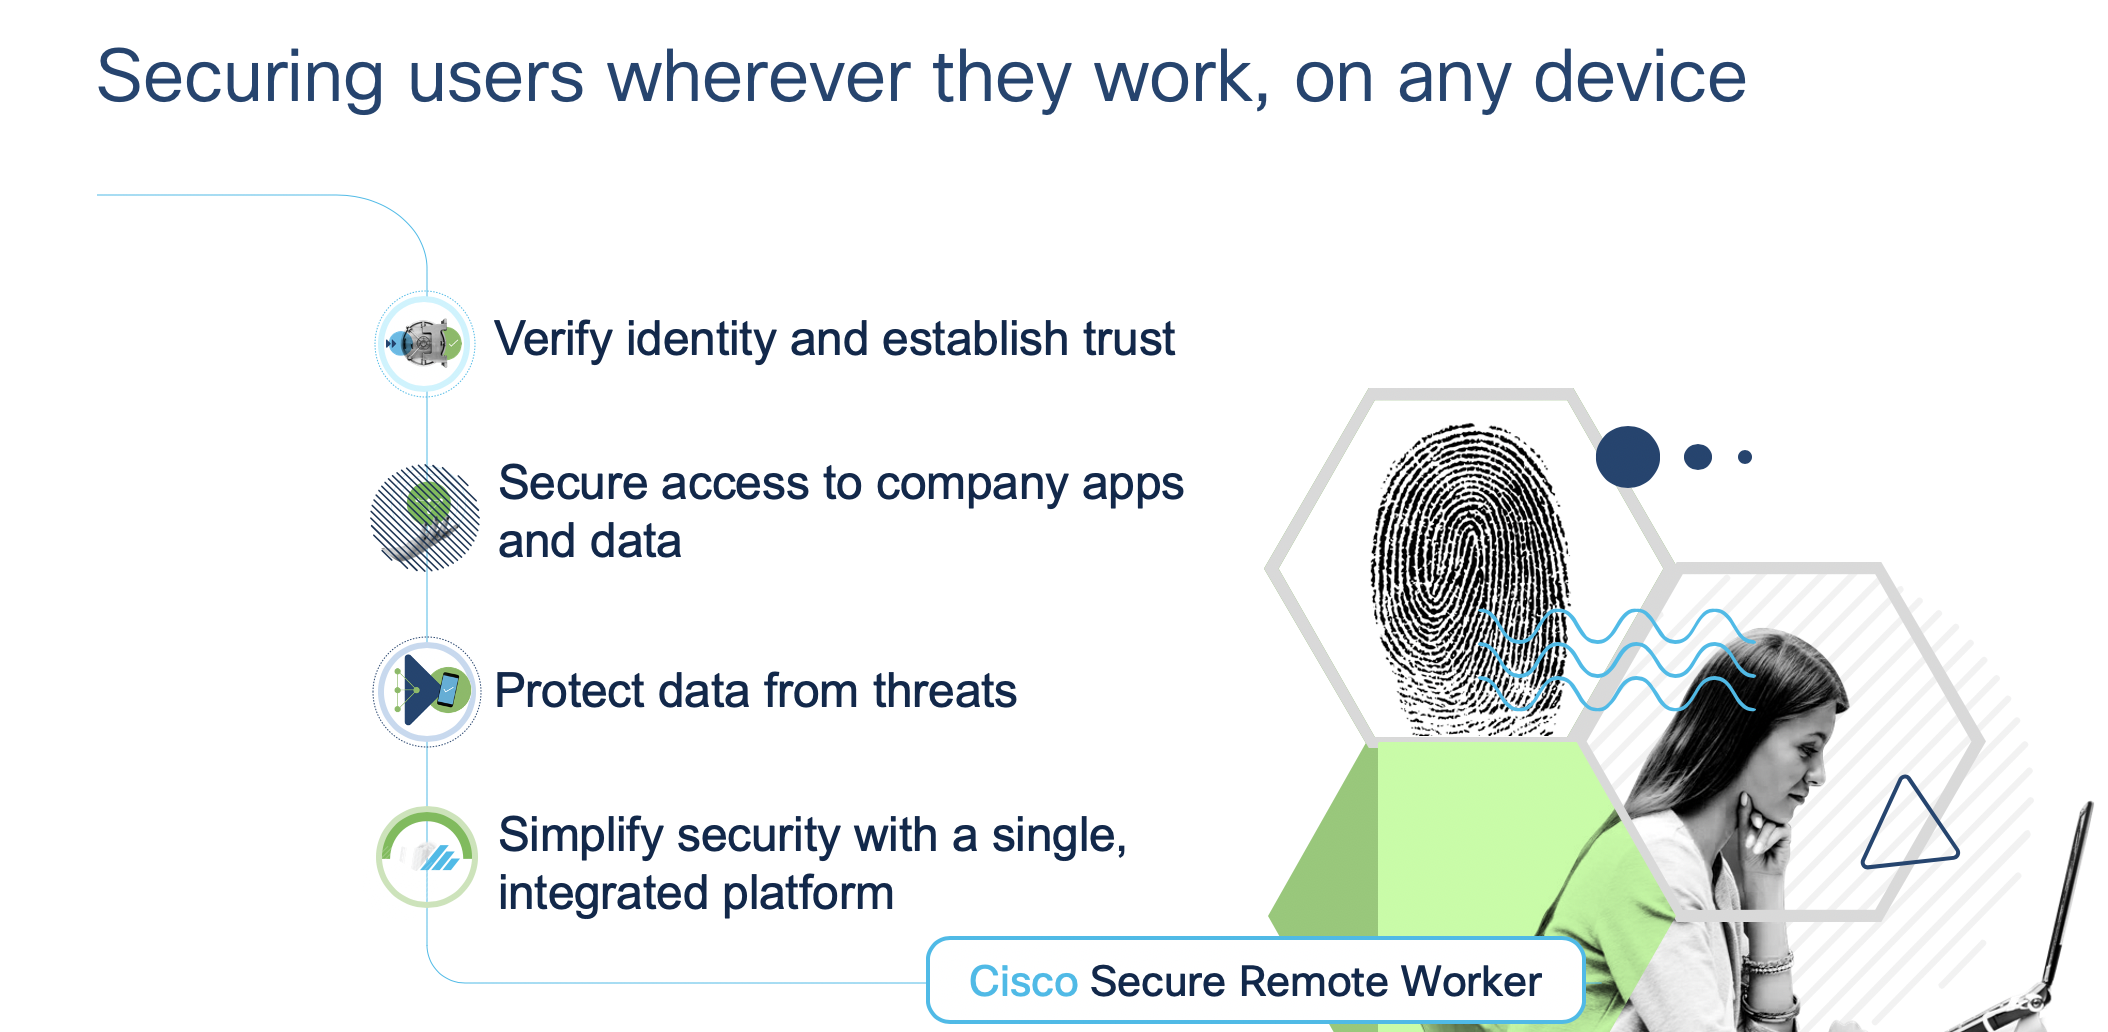 Securing users wherever they work, on any device